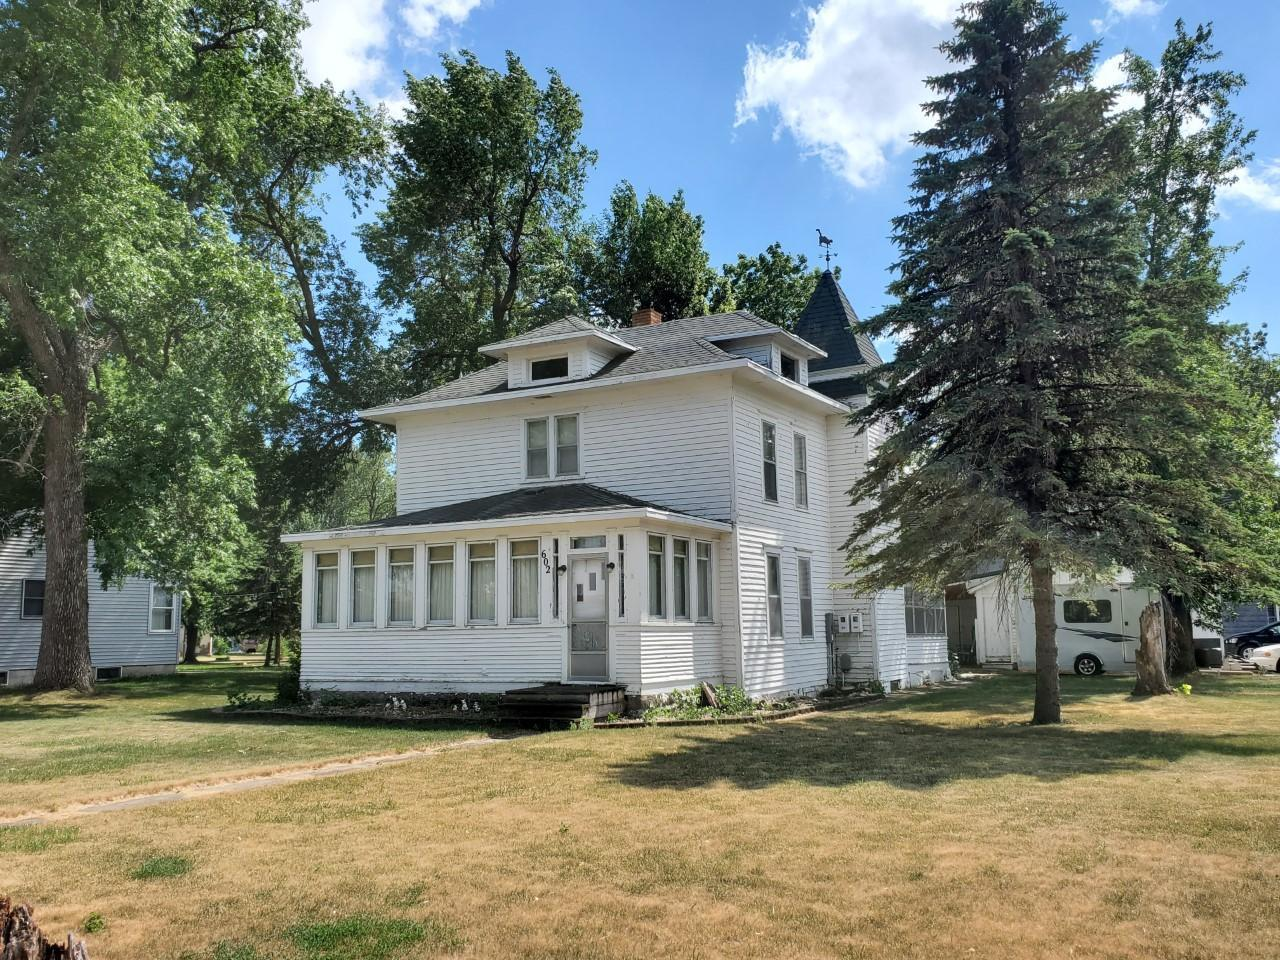 602 10th Street, Heron Lake, MN 56137, 3 Bedrooms Bedrooms, ,1 BathroomBathrooms,Residential,For Sale,10th,NST6012155